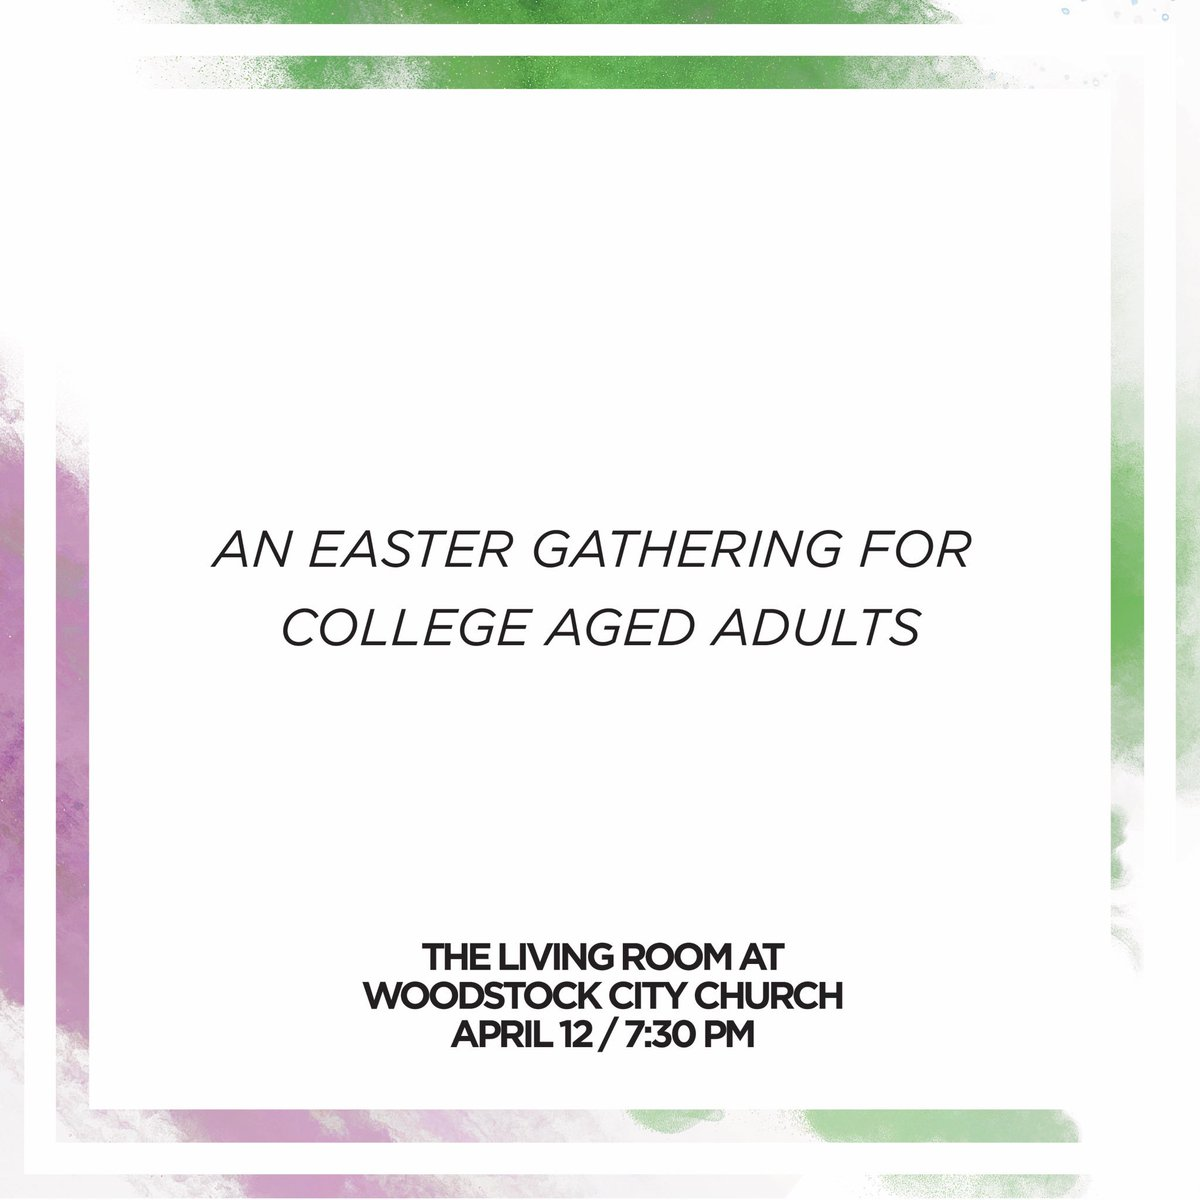 The Living Room KSU On Twitter Come Celebrate Easter With Us Tonight At TLR Dinner Starts In 2 Hours Pizza